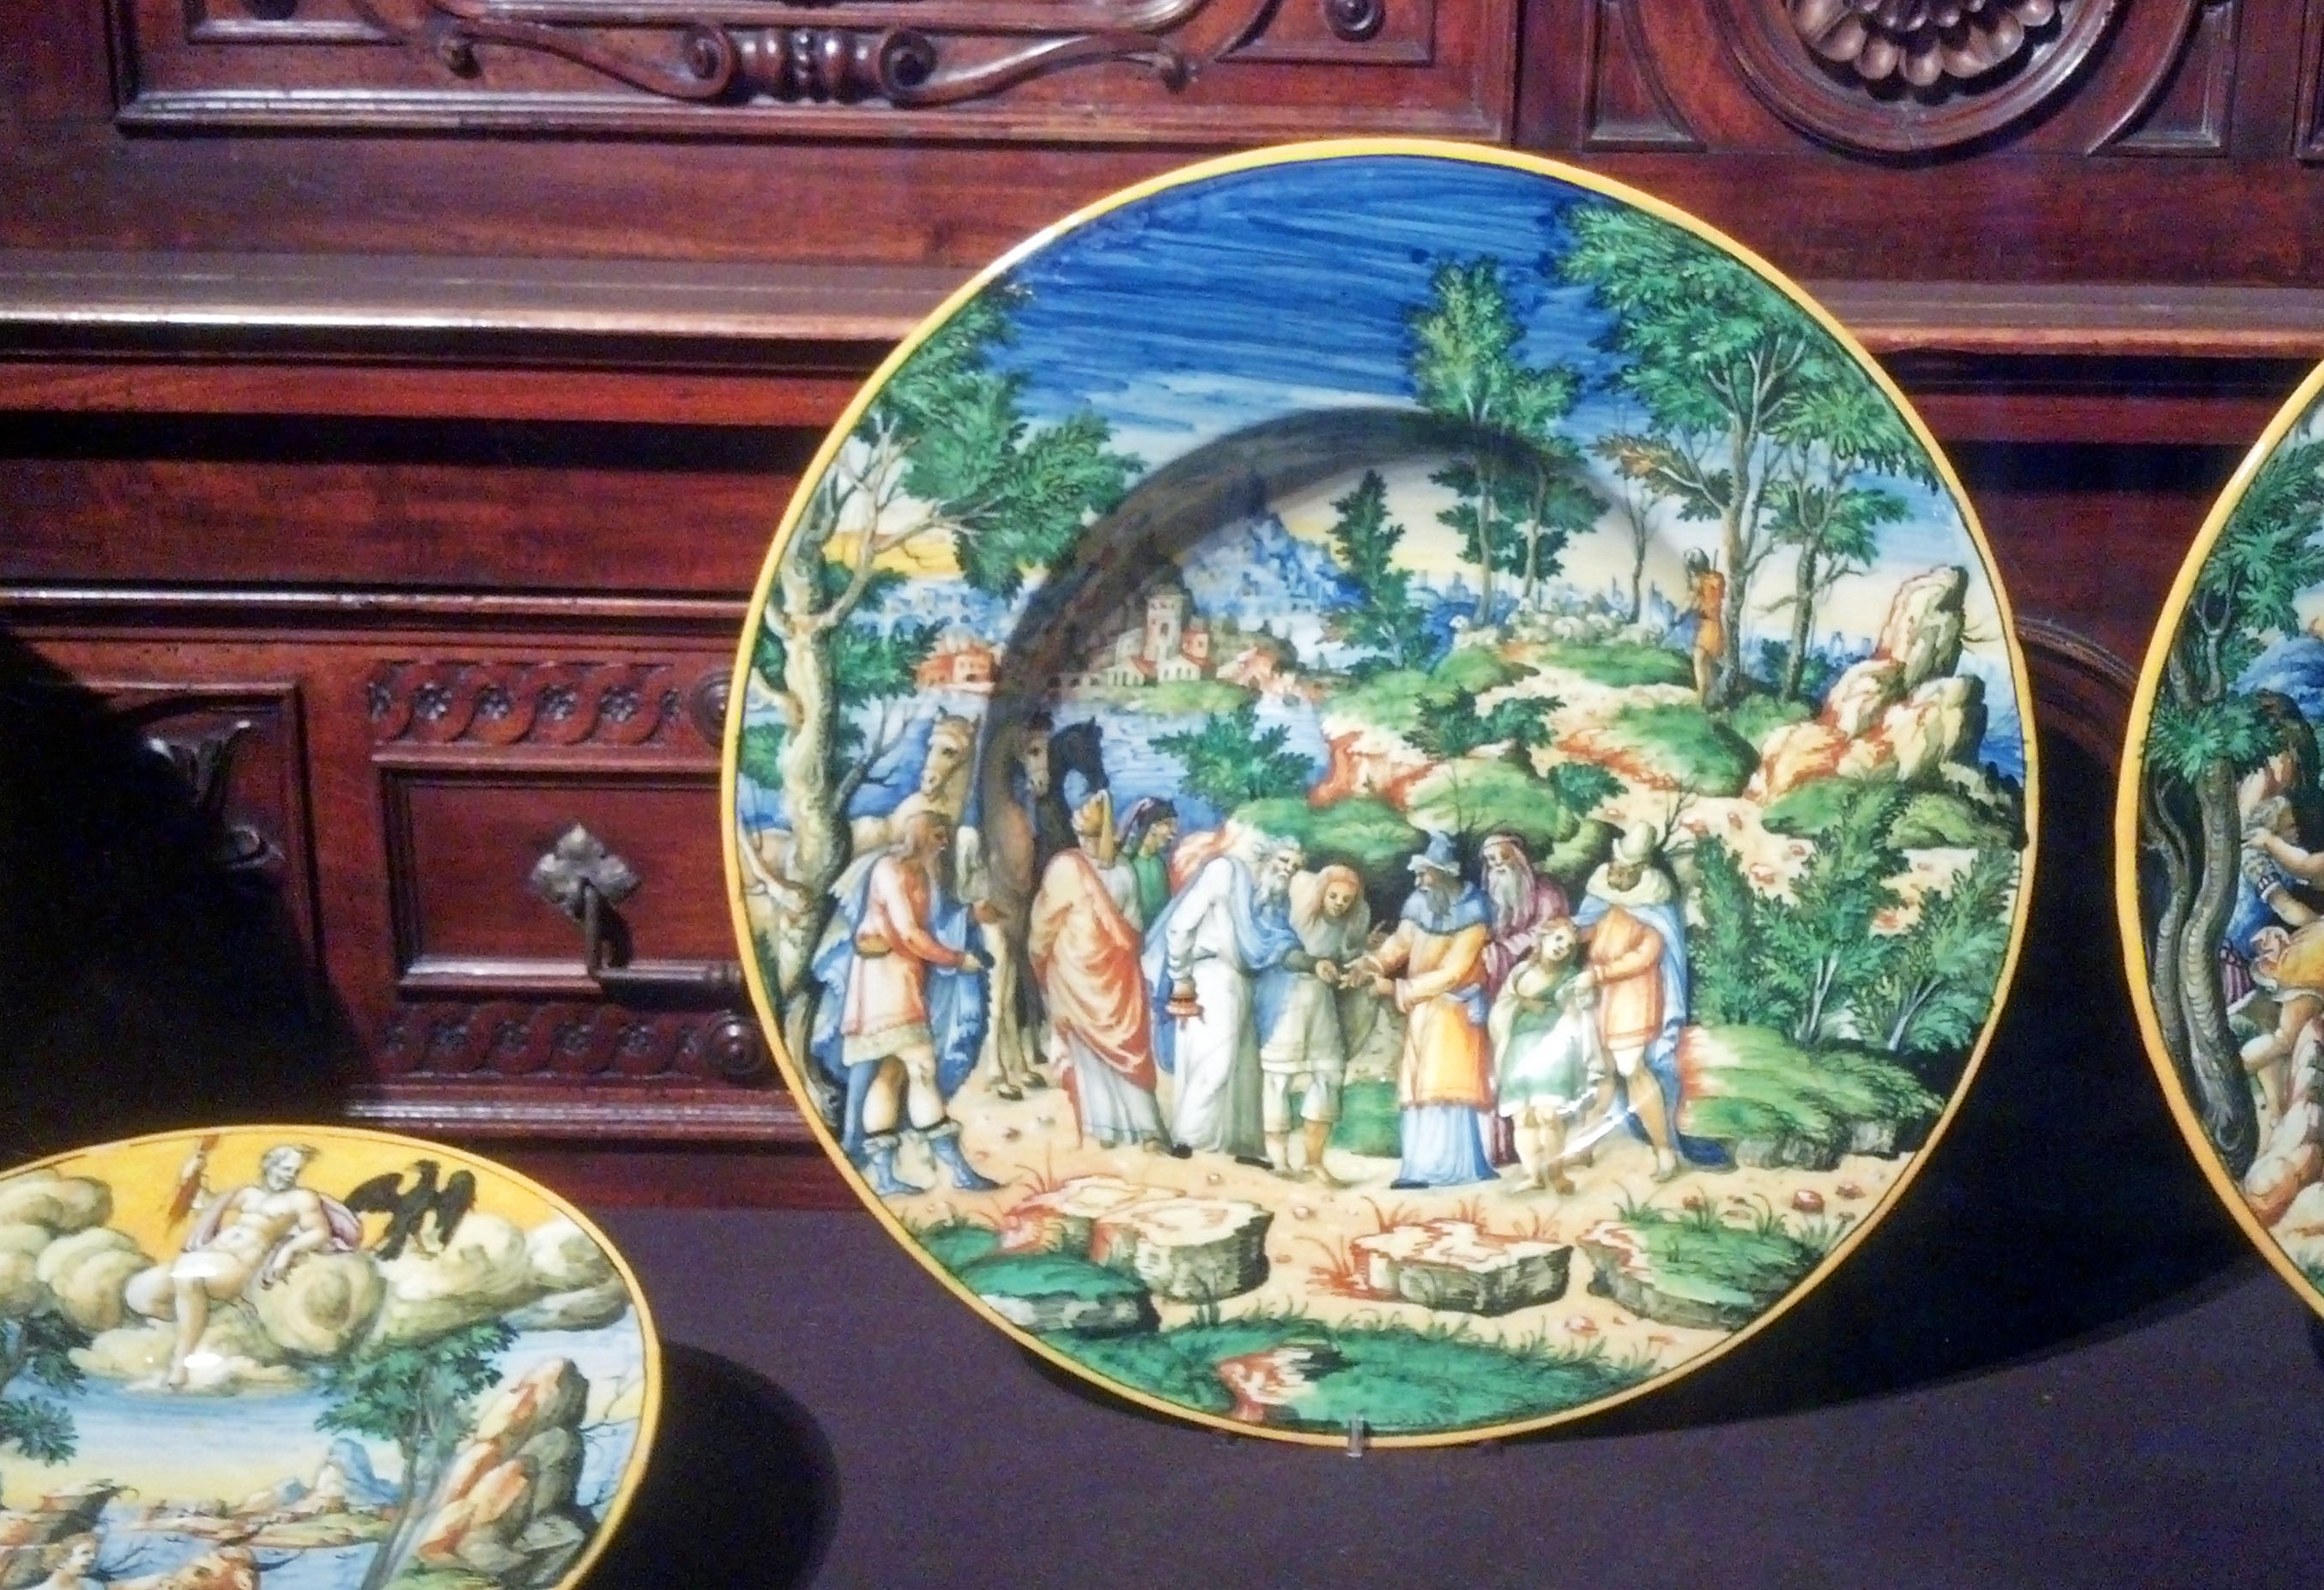 Part of an antique plate collection.